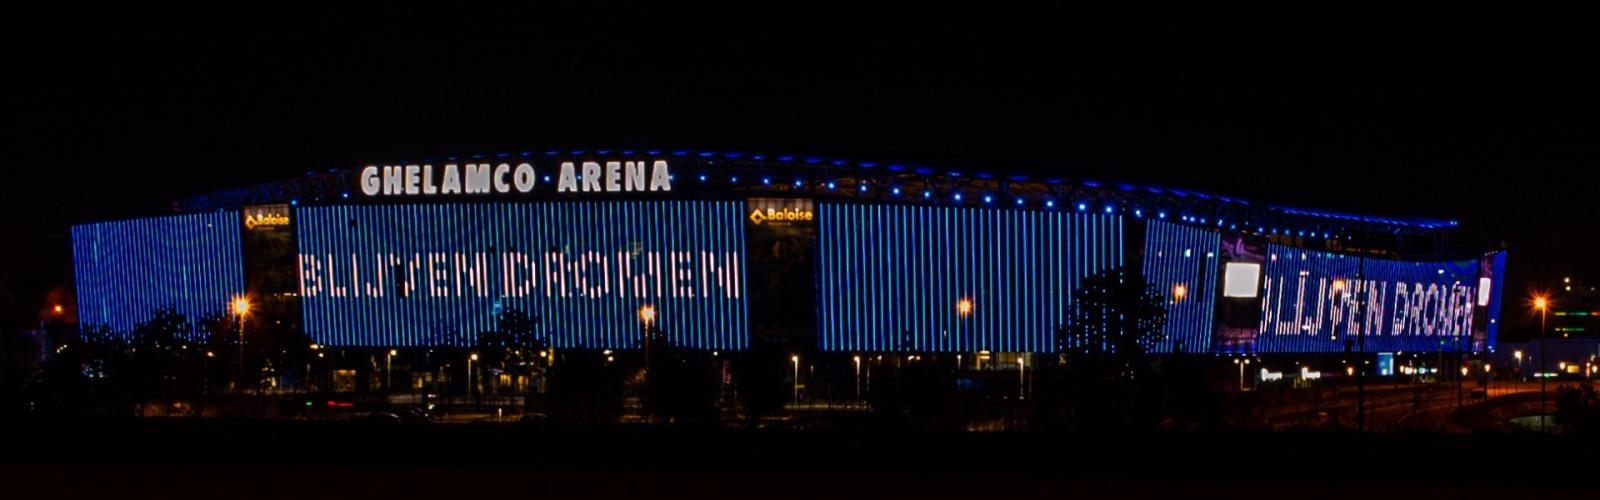 Ghelamco Arena by night